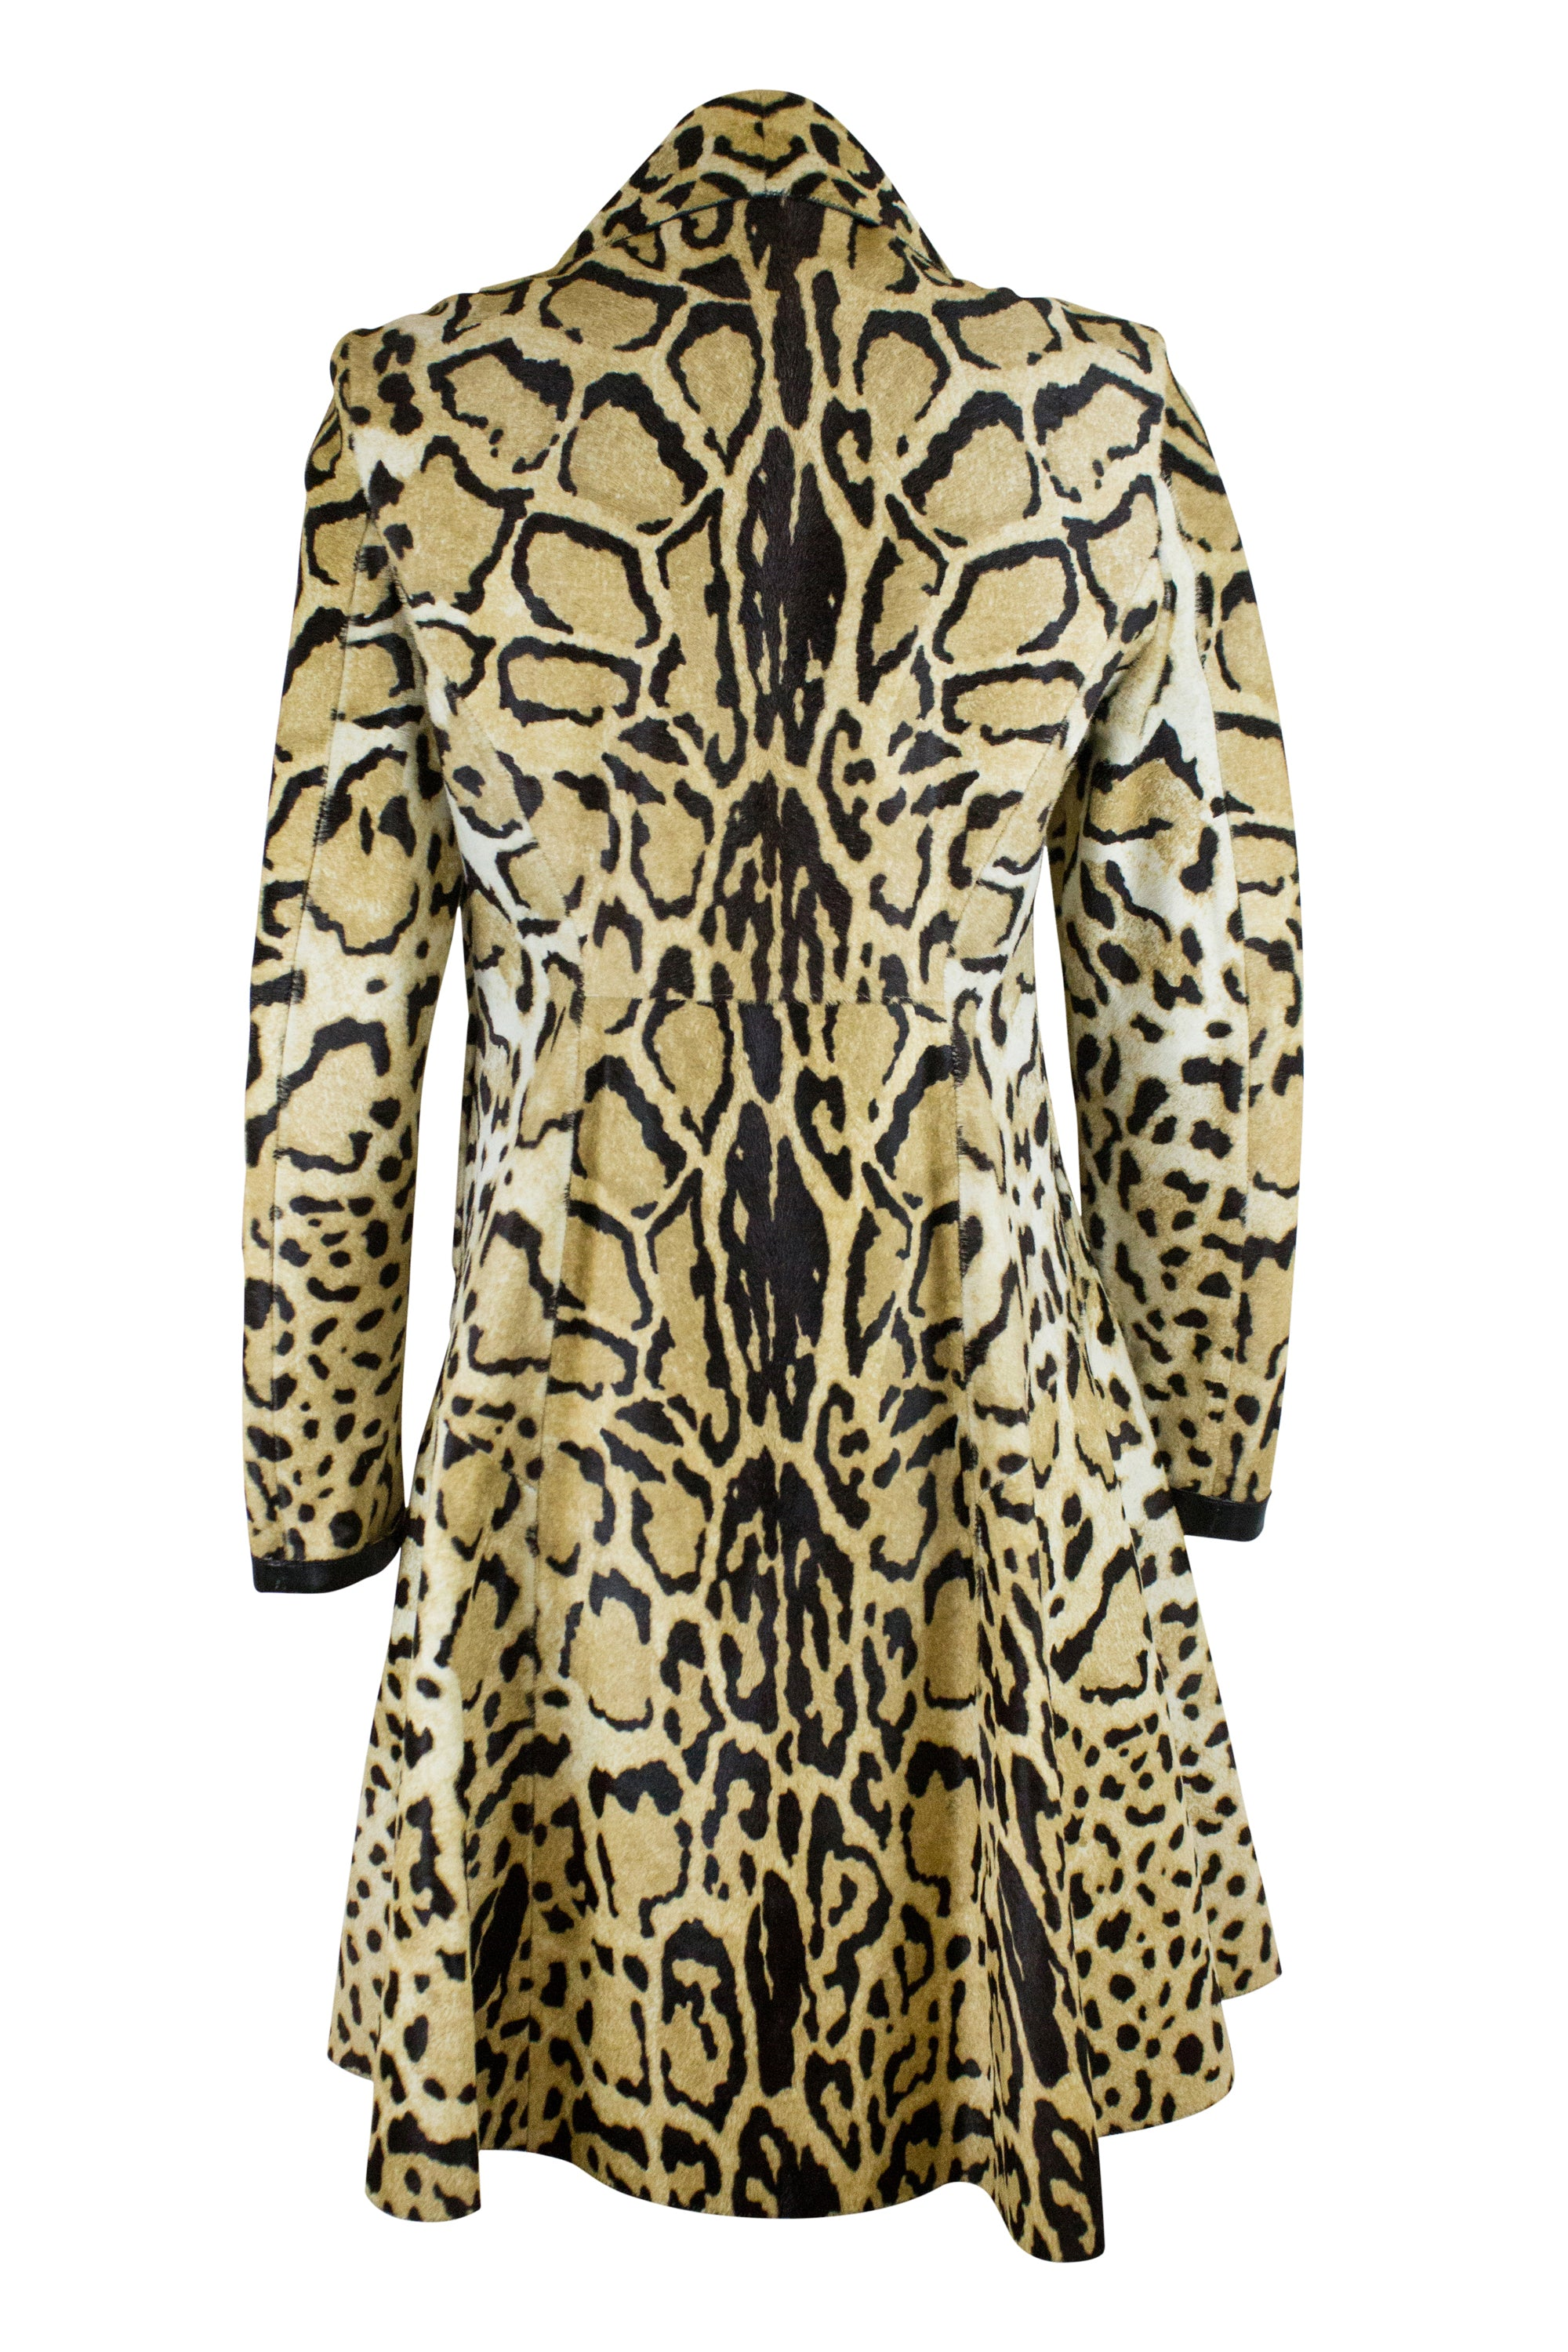 GUCCI Calf Hair Coat